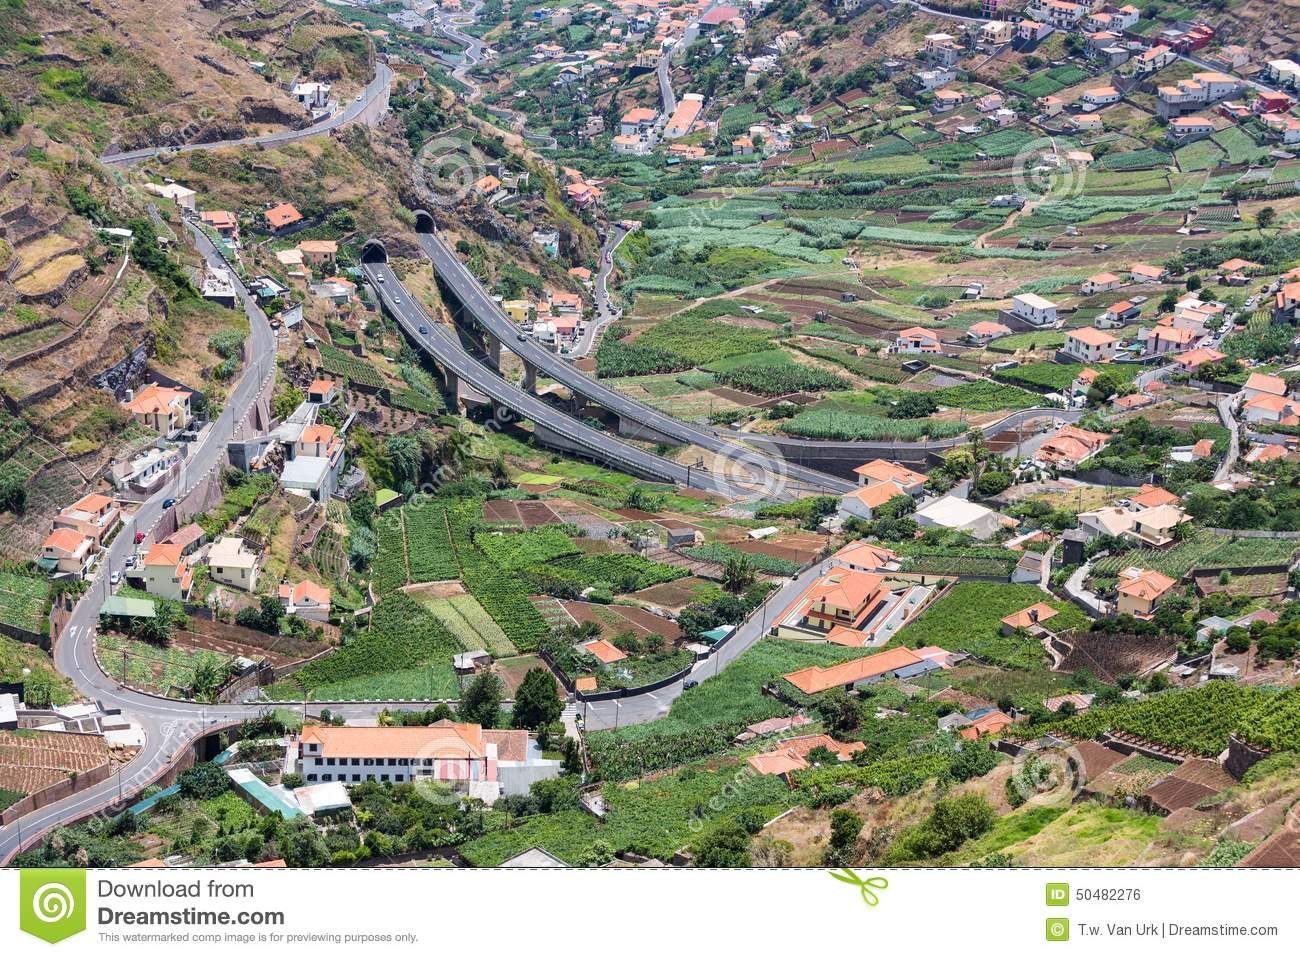 Aerial view of little villages and a highway in the mountains of Madeira Island